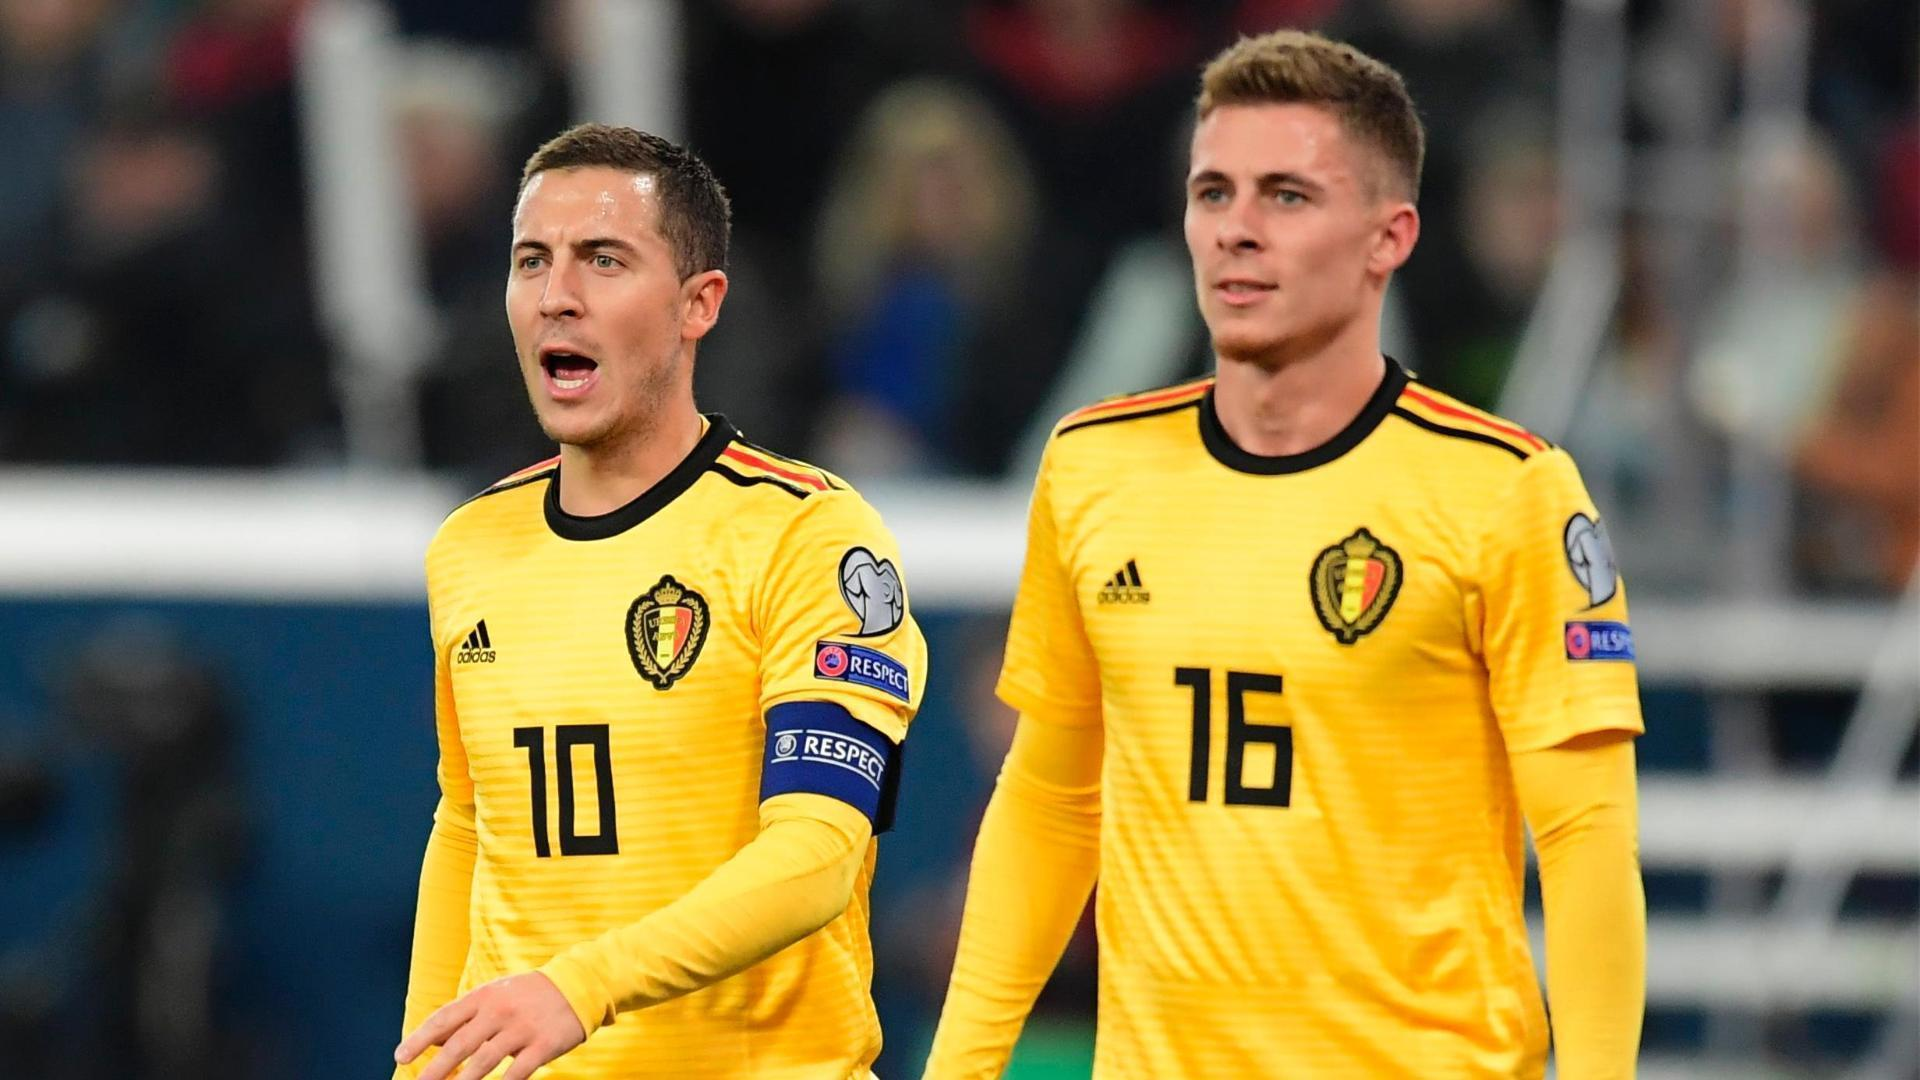 Hazard brothers lead Belgium to first place in Group I